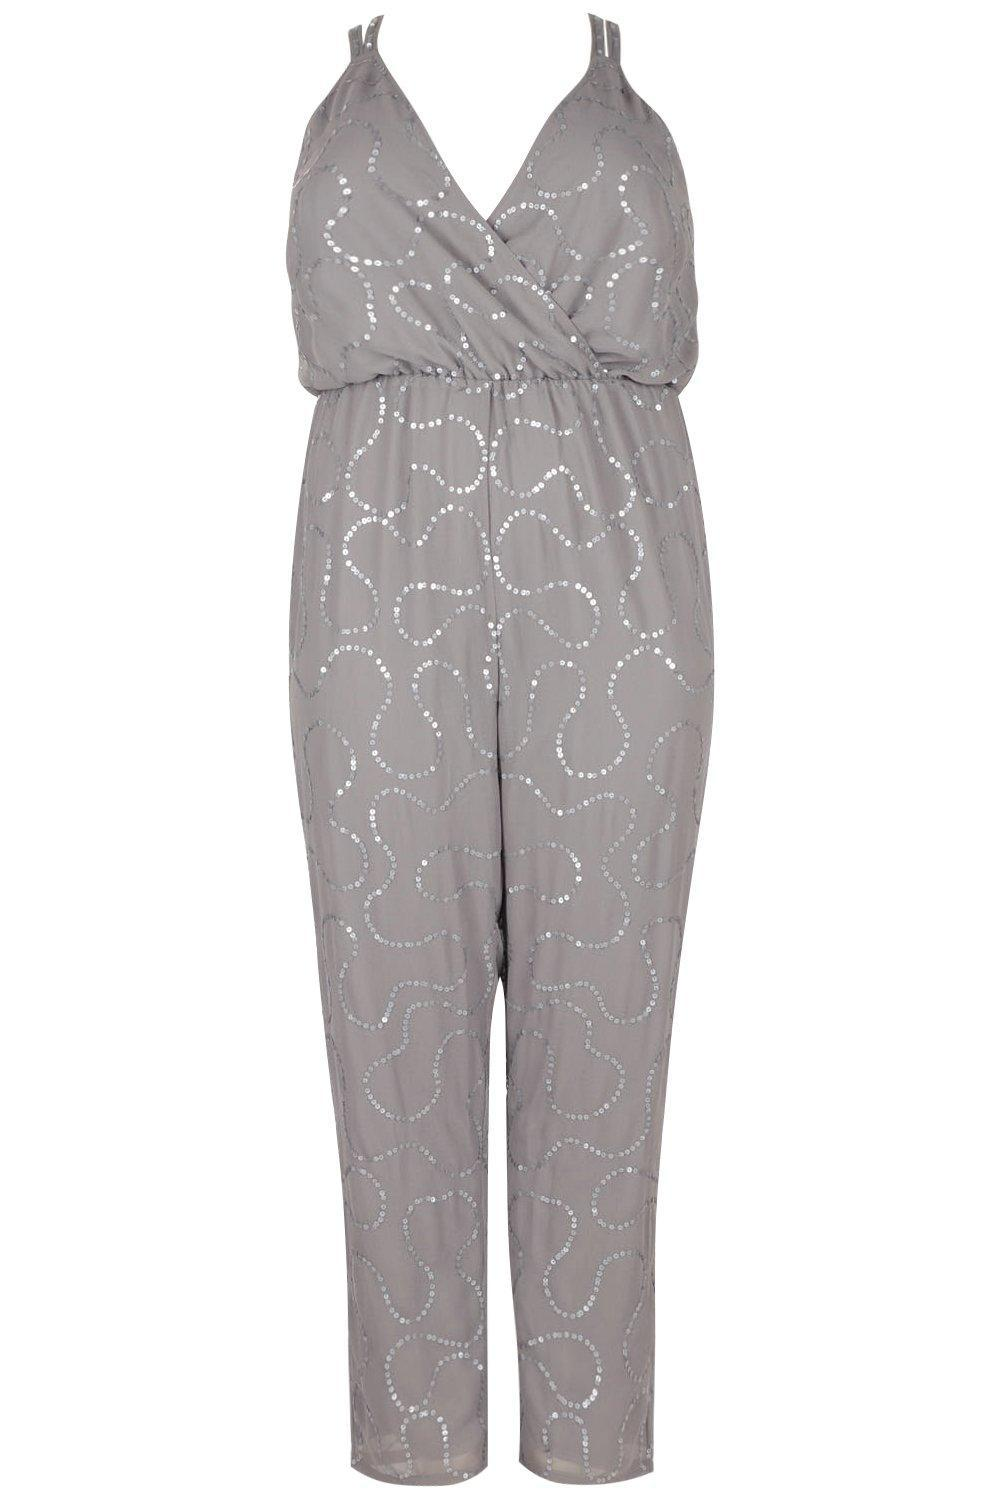 82fd5ff0e93 Lyst - Boohoo Plus Boutique Sequin Embellished Jumpsuit in Gray